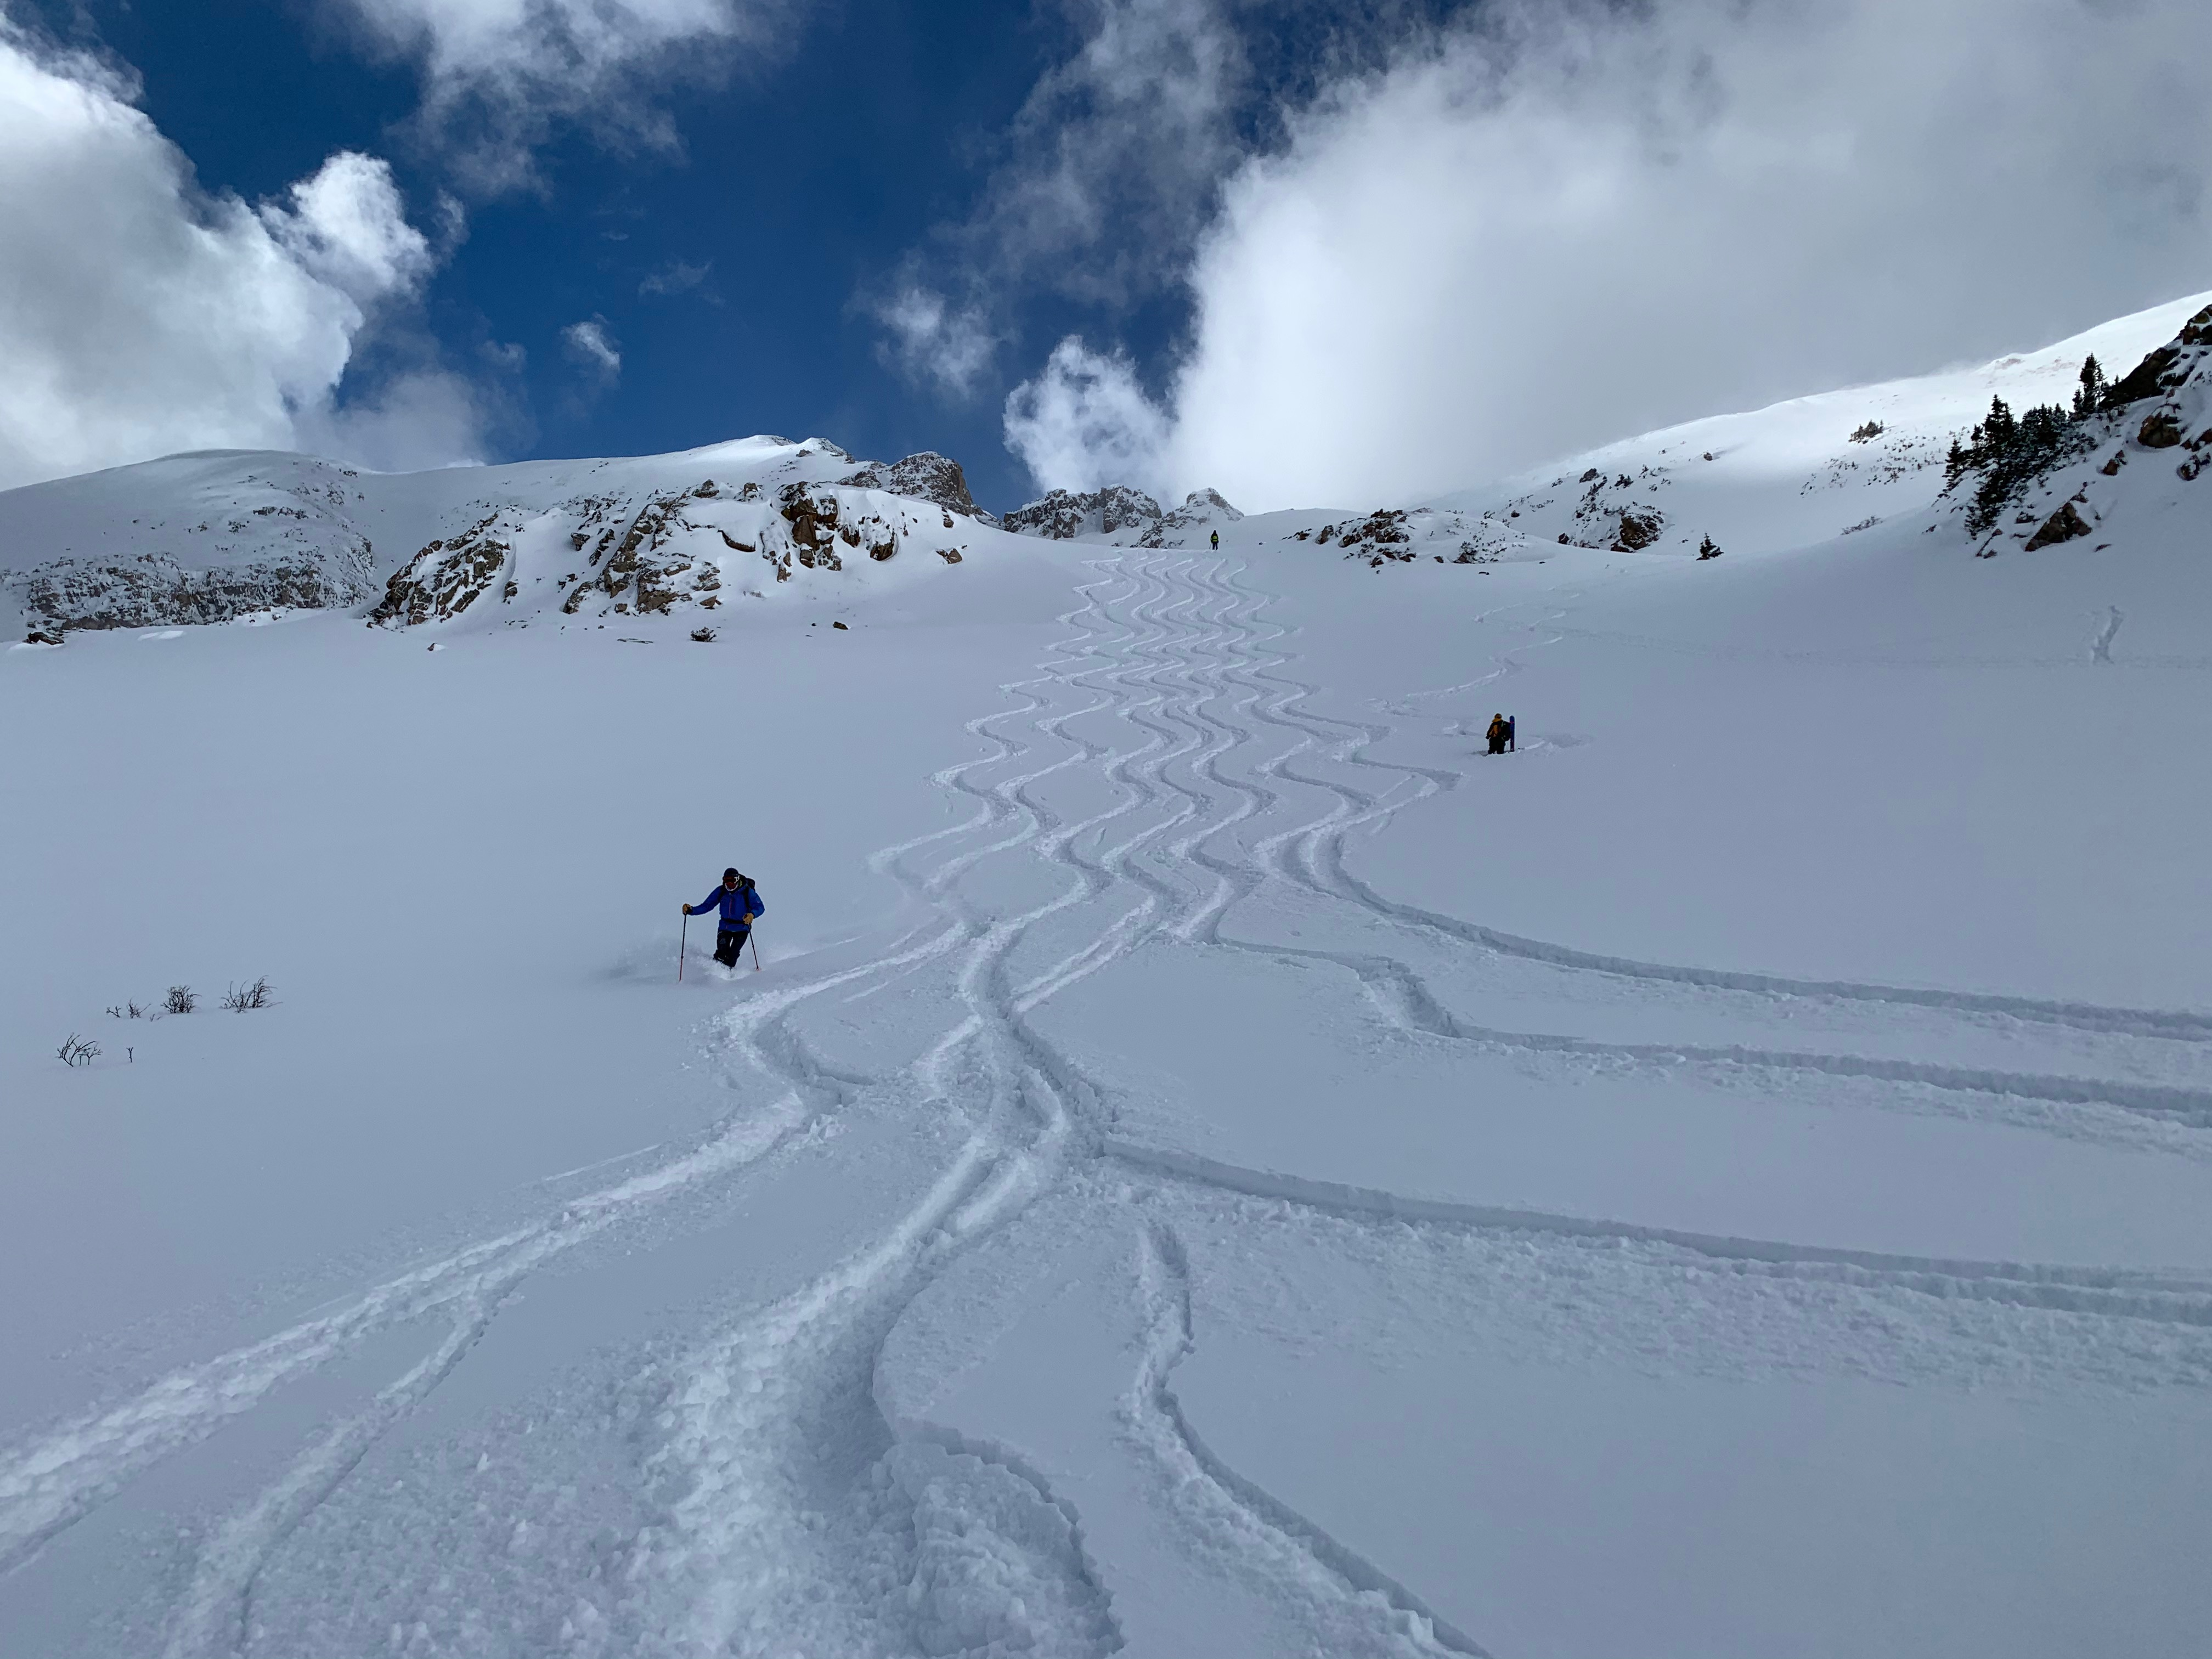 Backcountry skiing tracks in powder snow